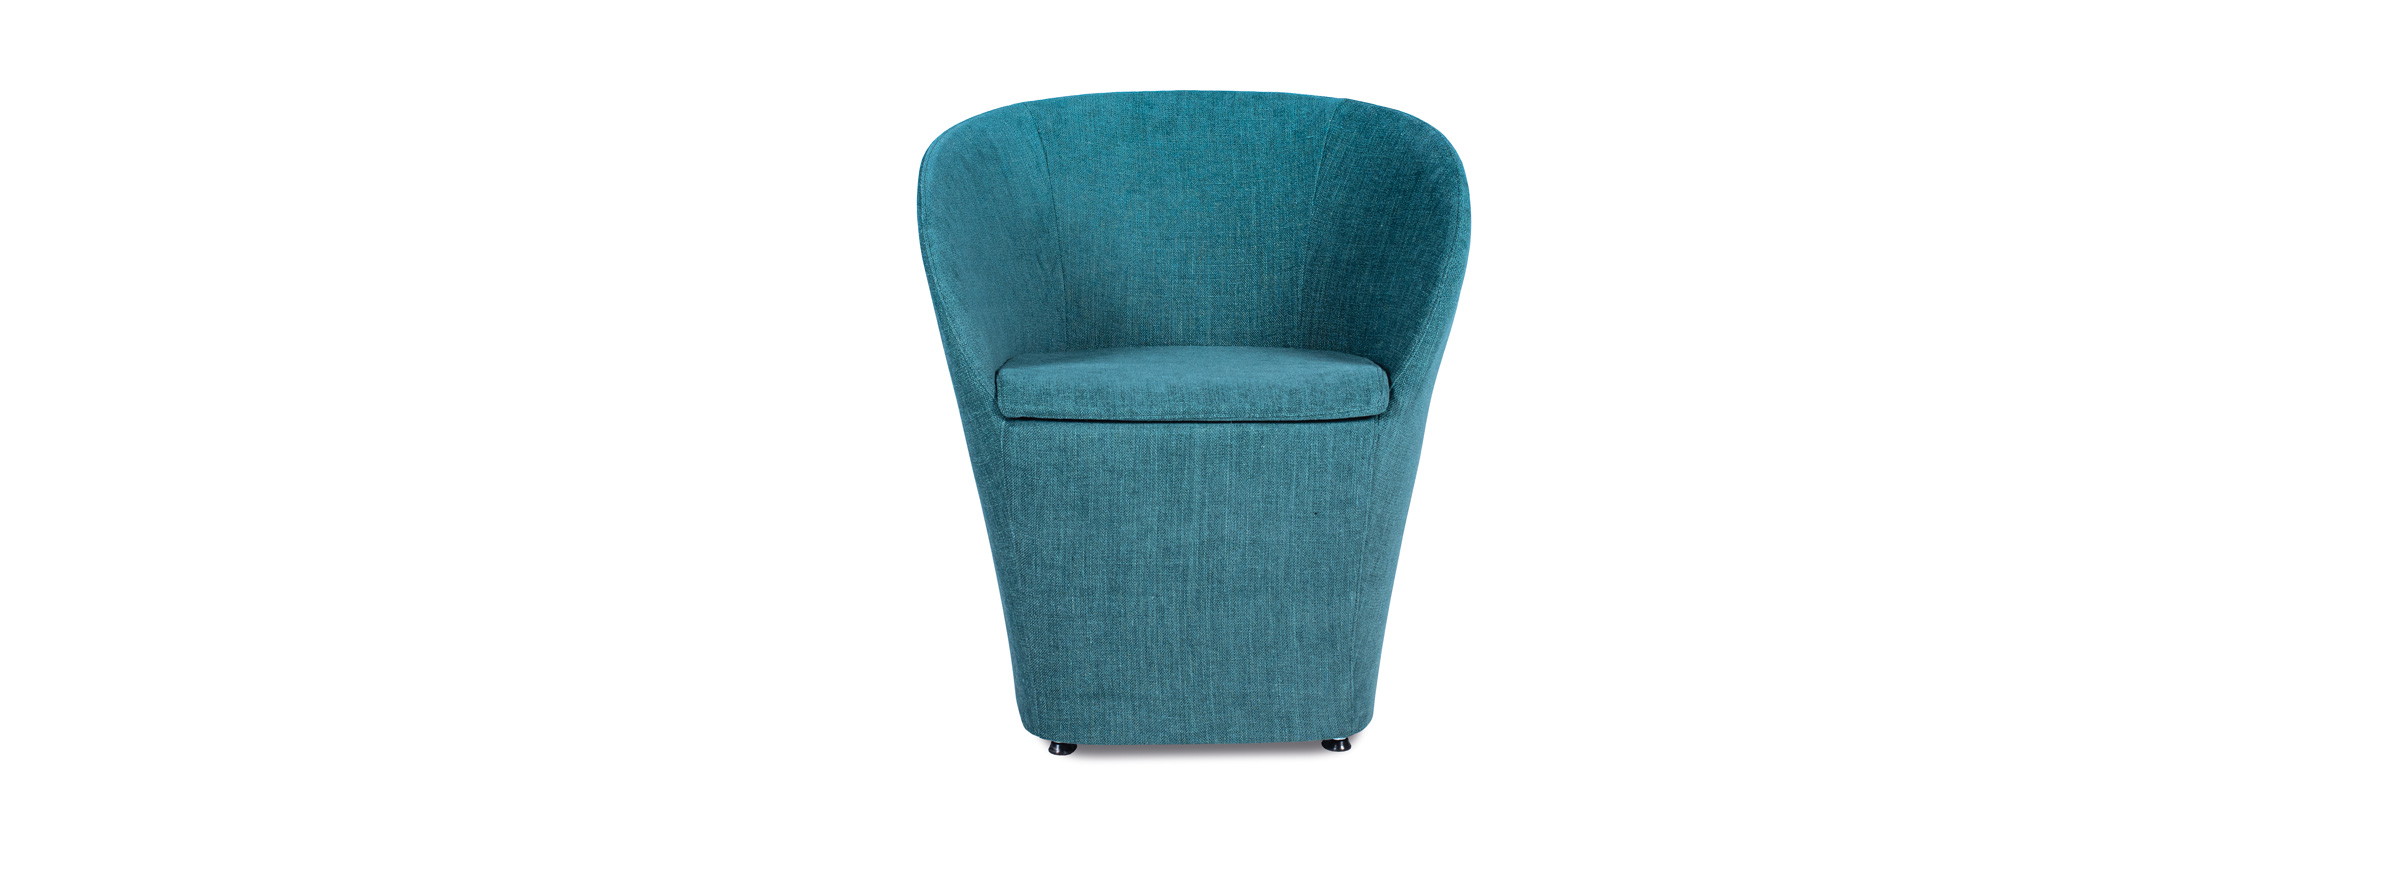 Désio-WALLACE-fauteuil-personnalisable-made-in-france-tissu-hotel-qualité